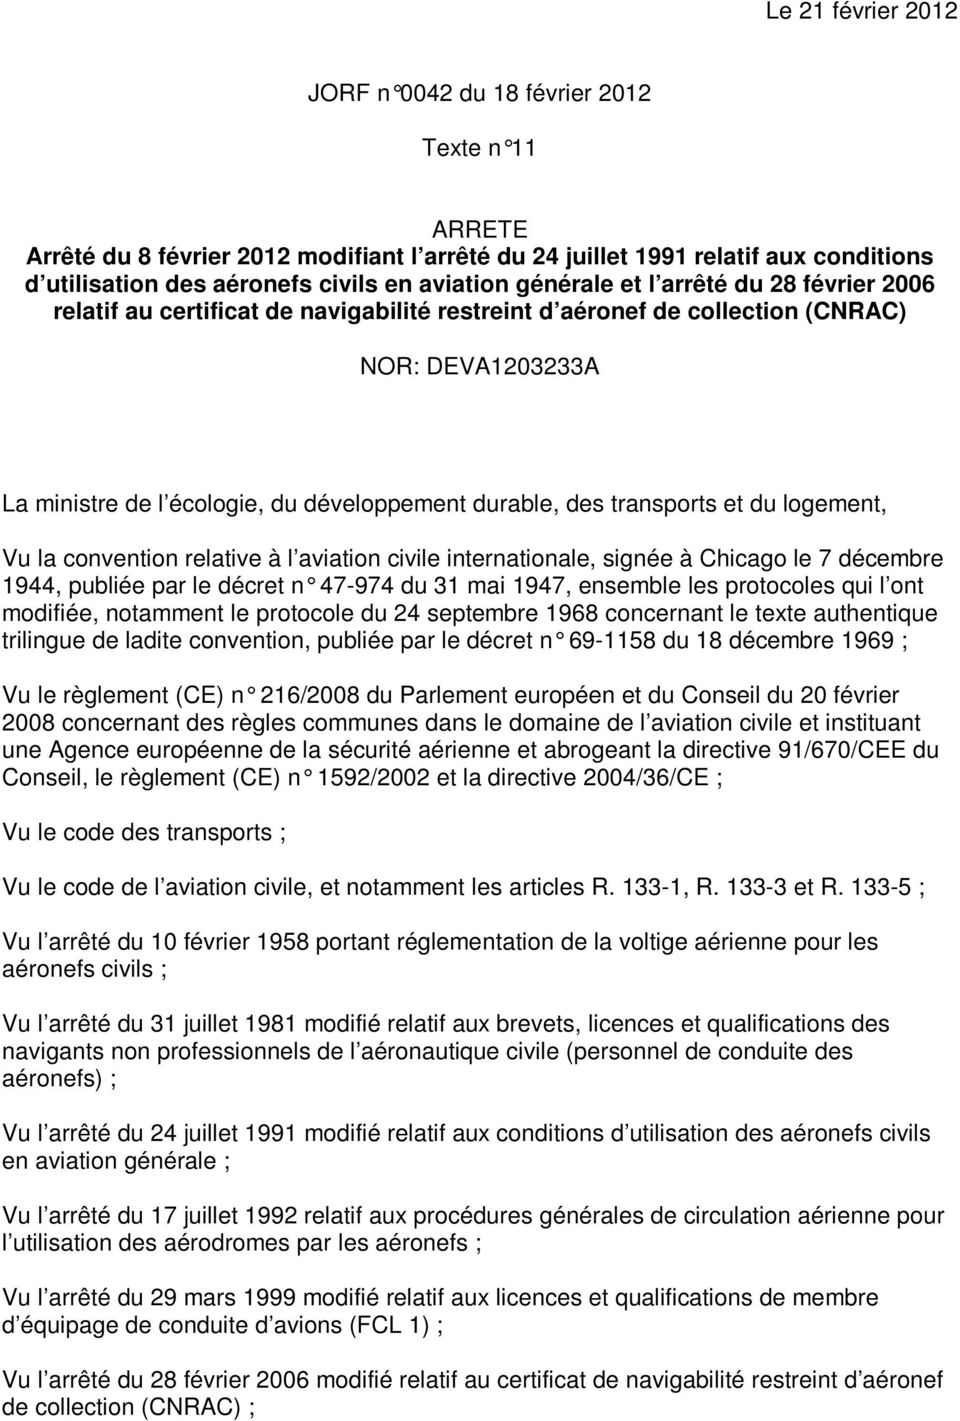 transports et du logement, Vu la convention relative à l aviation civile internationale, signée à Chicago le 7 décembre 1944, publiée par le décret n 47-974 du 31 mai 1947, ensemble les protocoles